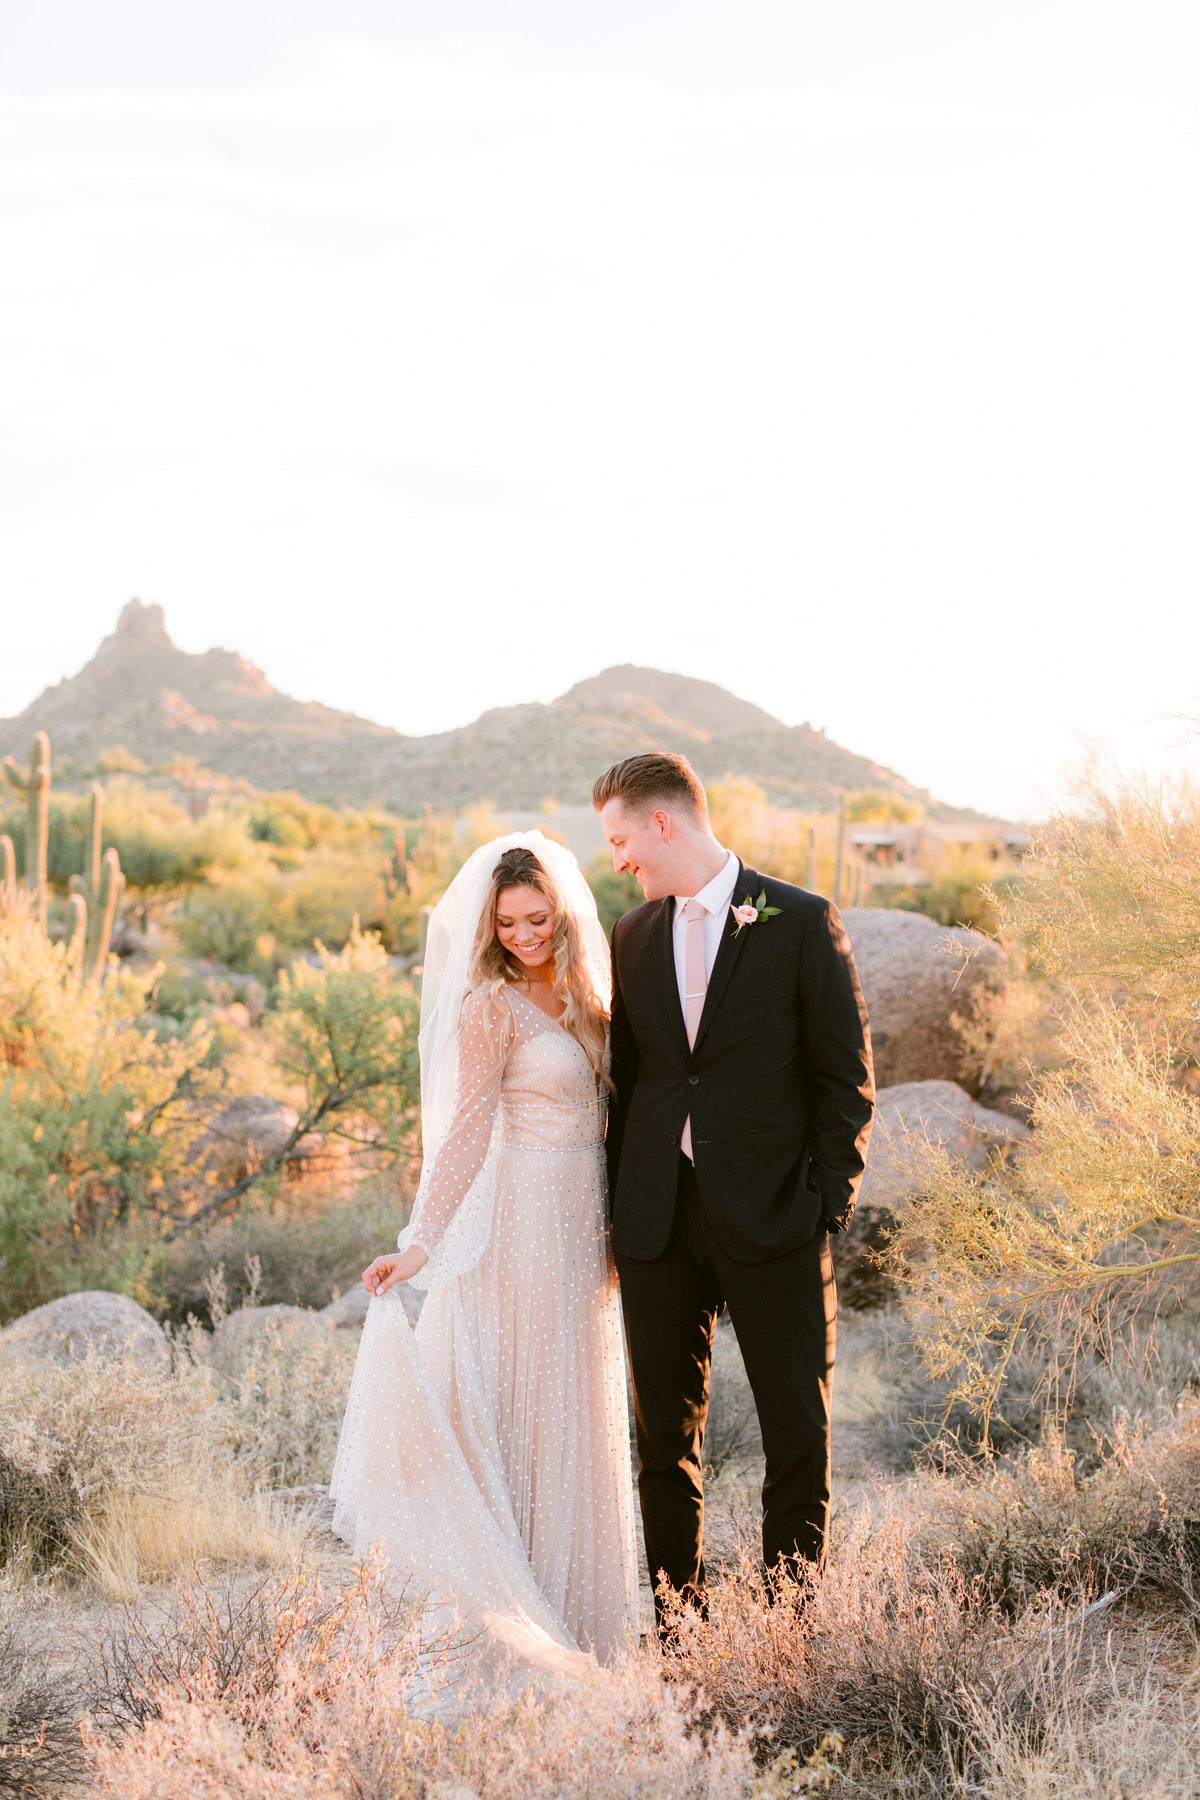 Ash-Simmons-Photography-Troon-Golf-Club-Scottsdale-Arizona-Wedding-7279